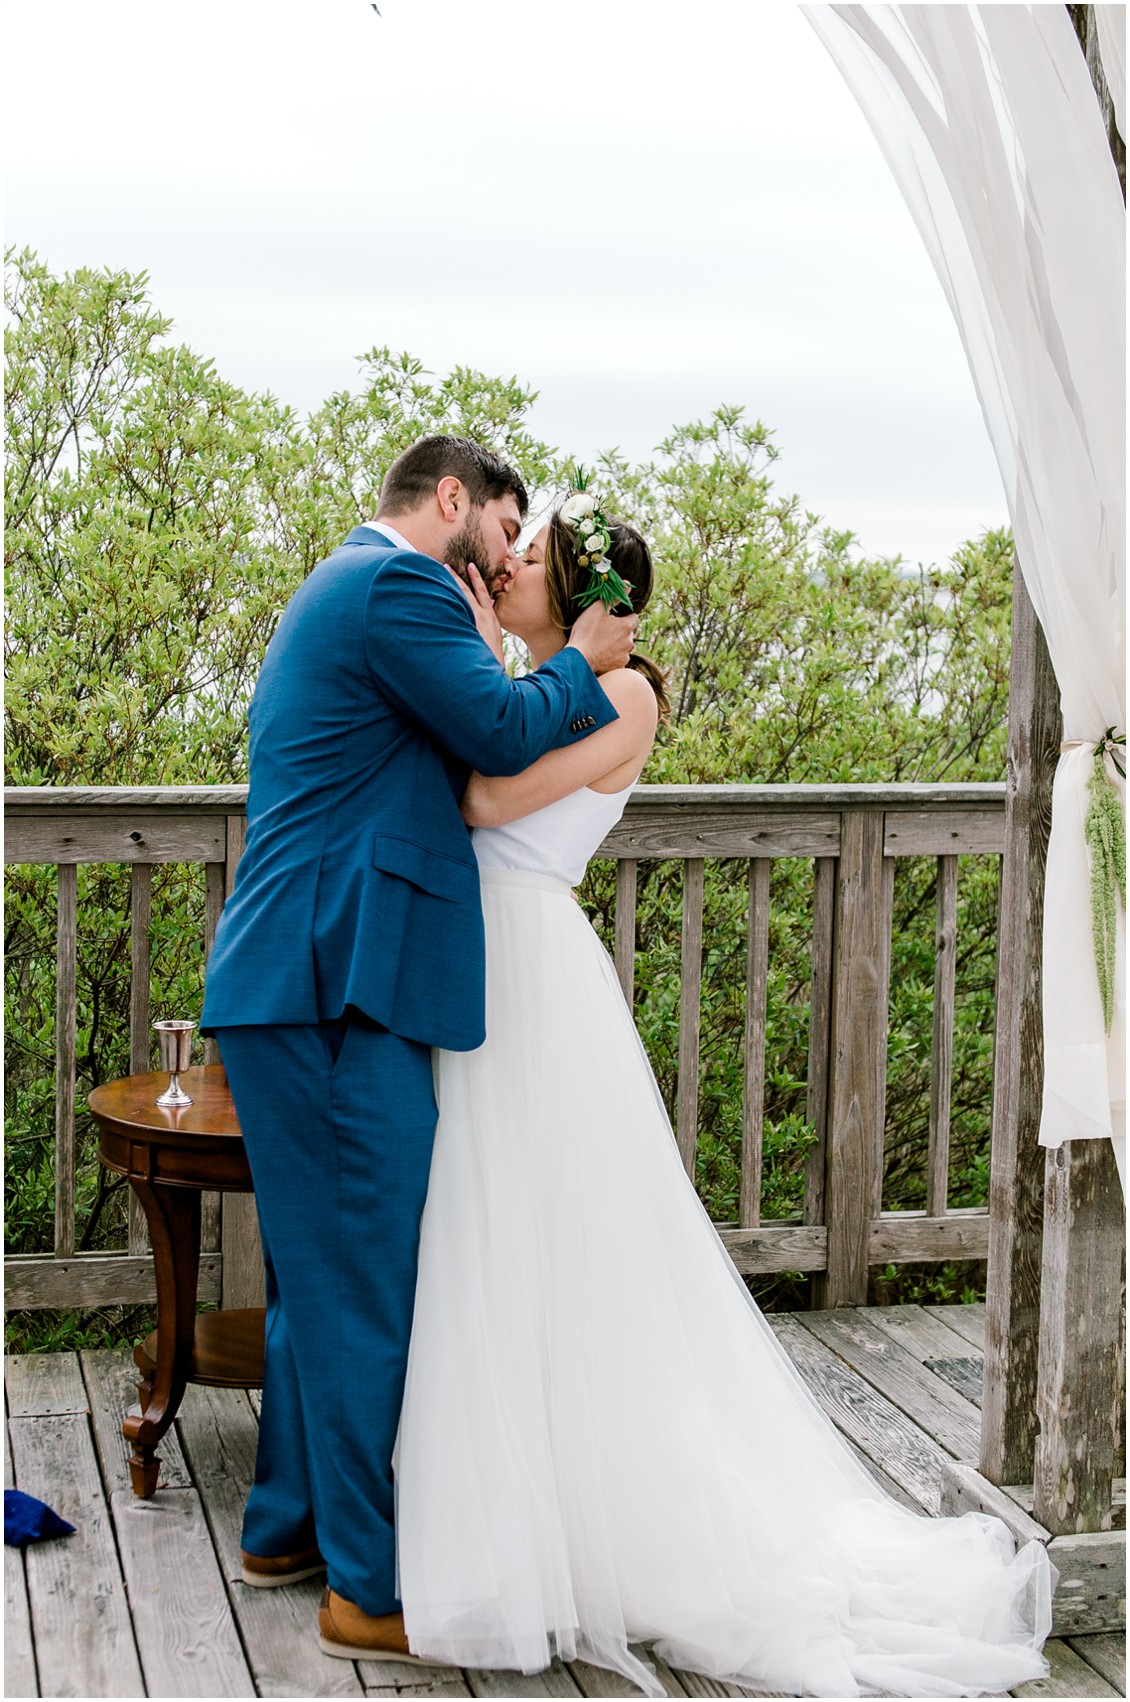 First kiss naturally beautiful wedding | My Eastern Shore Wedding | Erin Wheeler Photography | Bayside Resort Golf Club